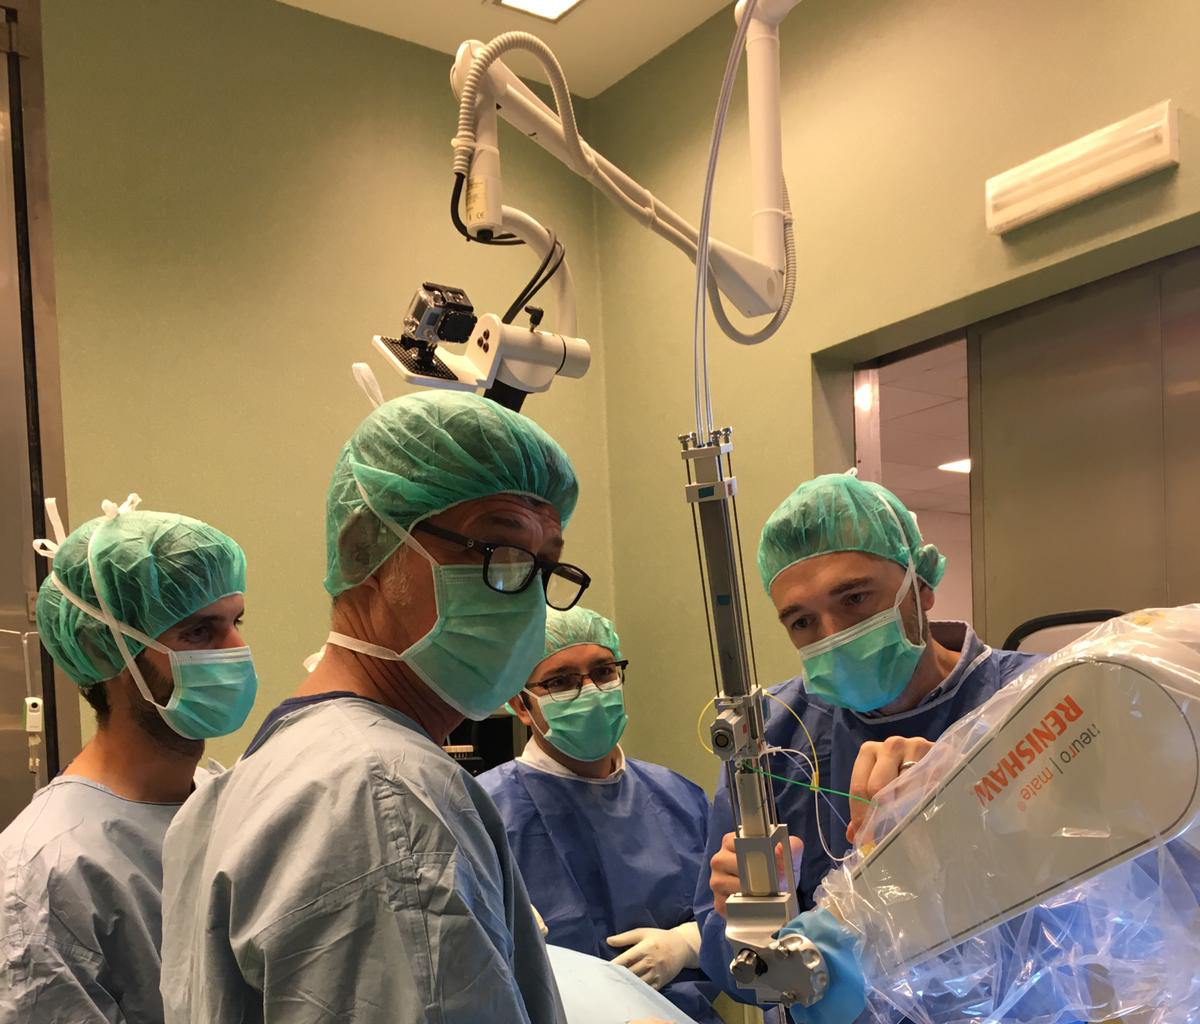 The medical team during the invivo trial of the catheter insertion